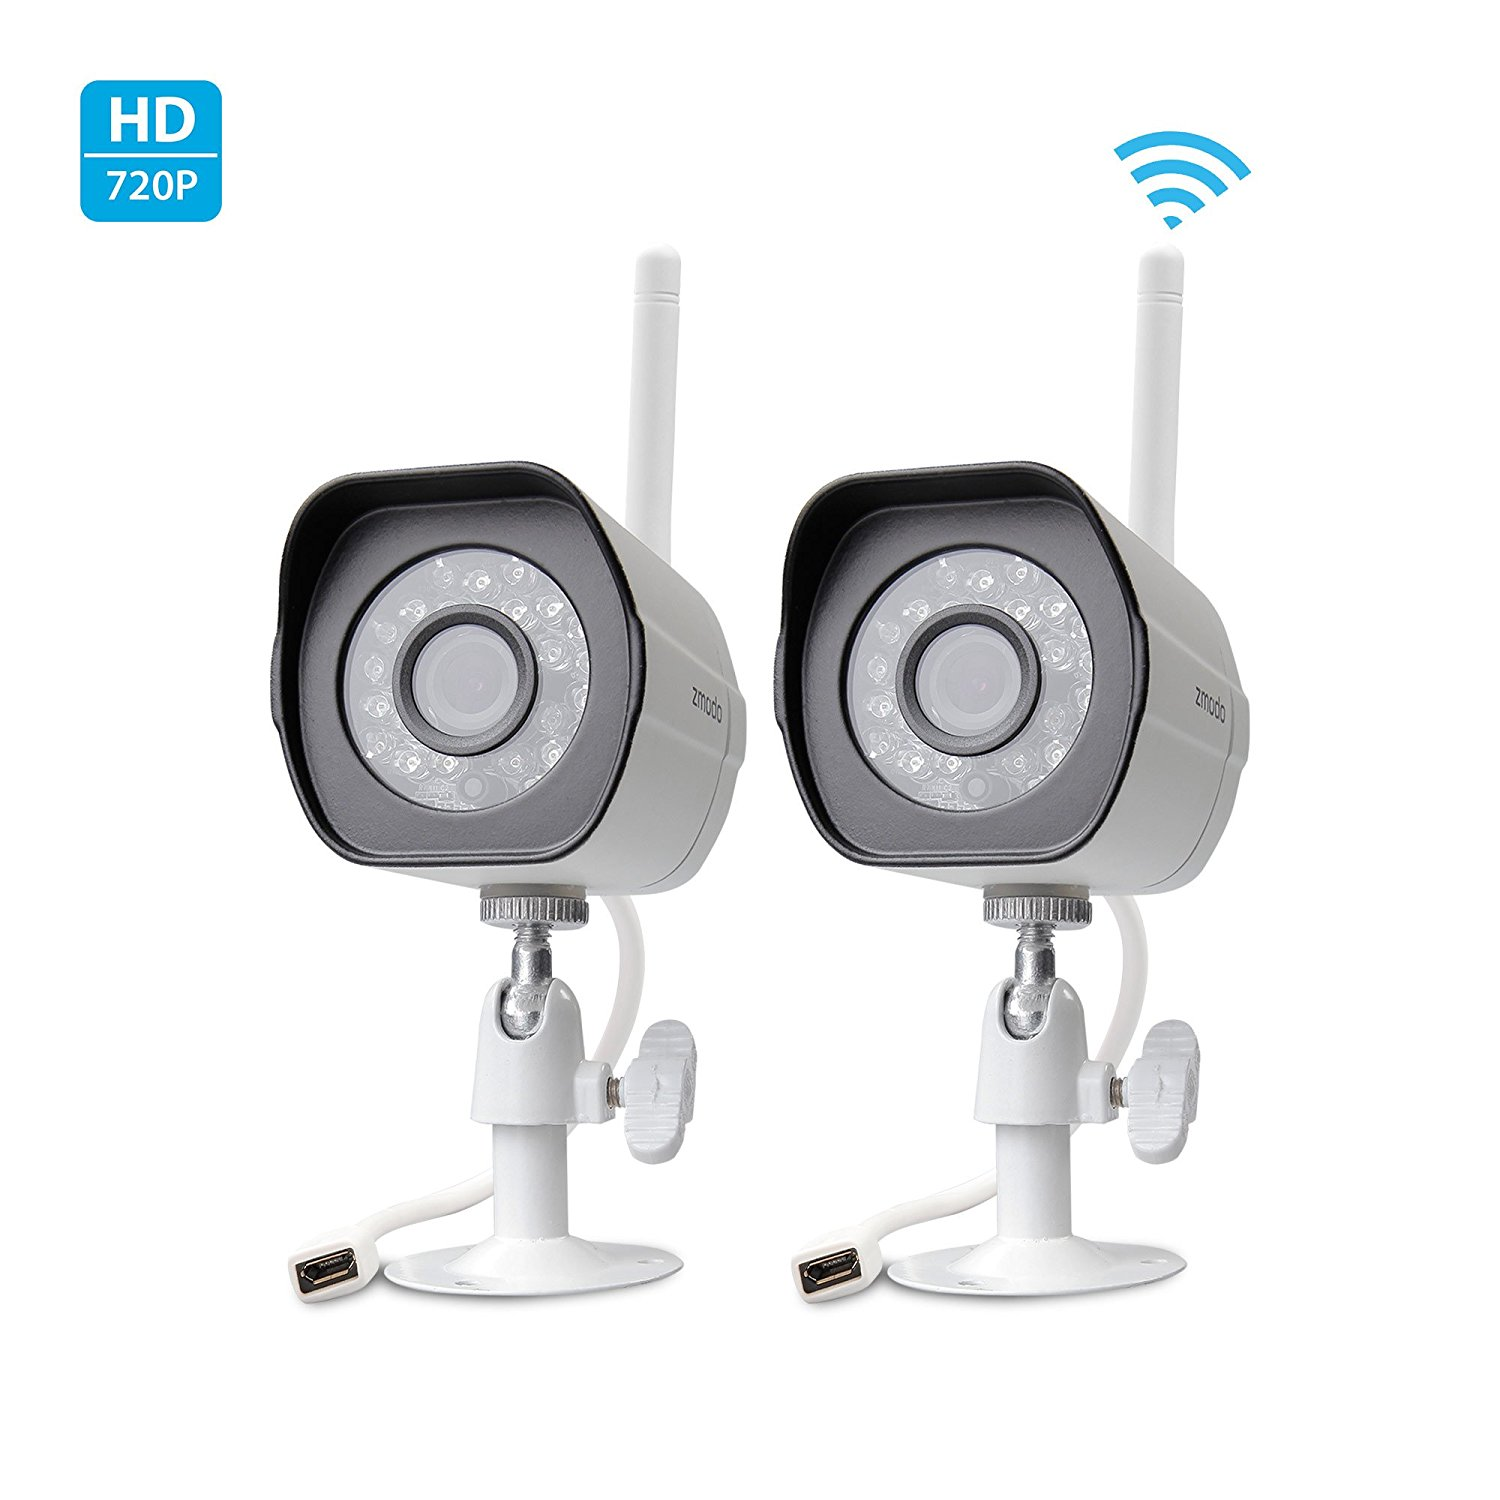 Zmodo Smart Wireless Security Cameras HD WiFi IP Cameras with Night Vision Easy Remote Access